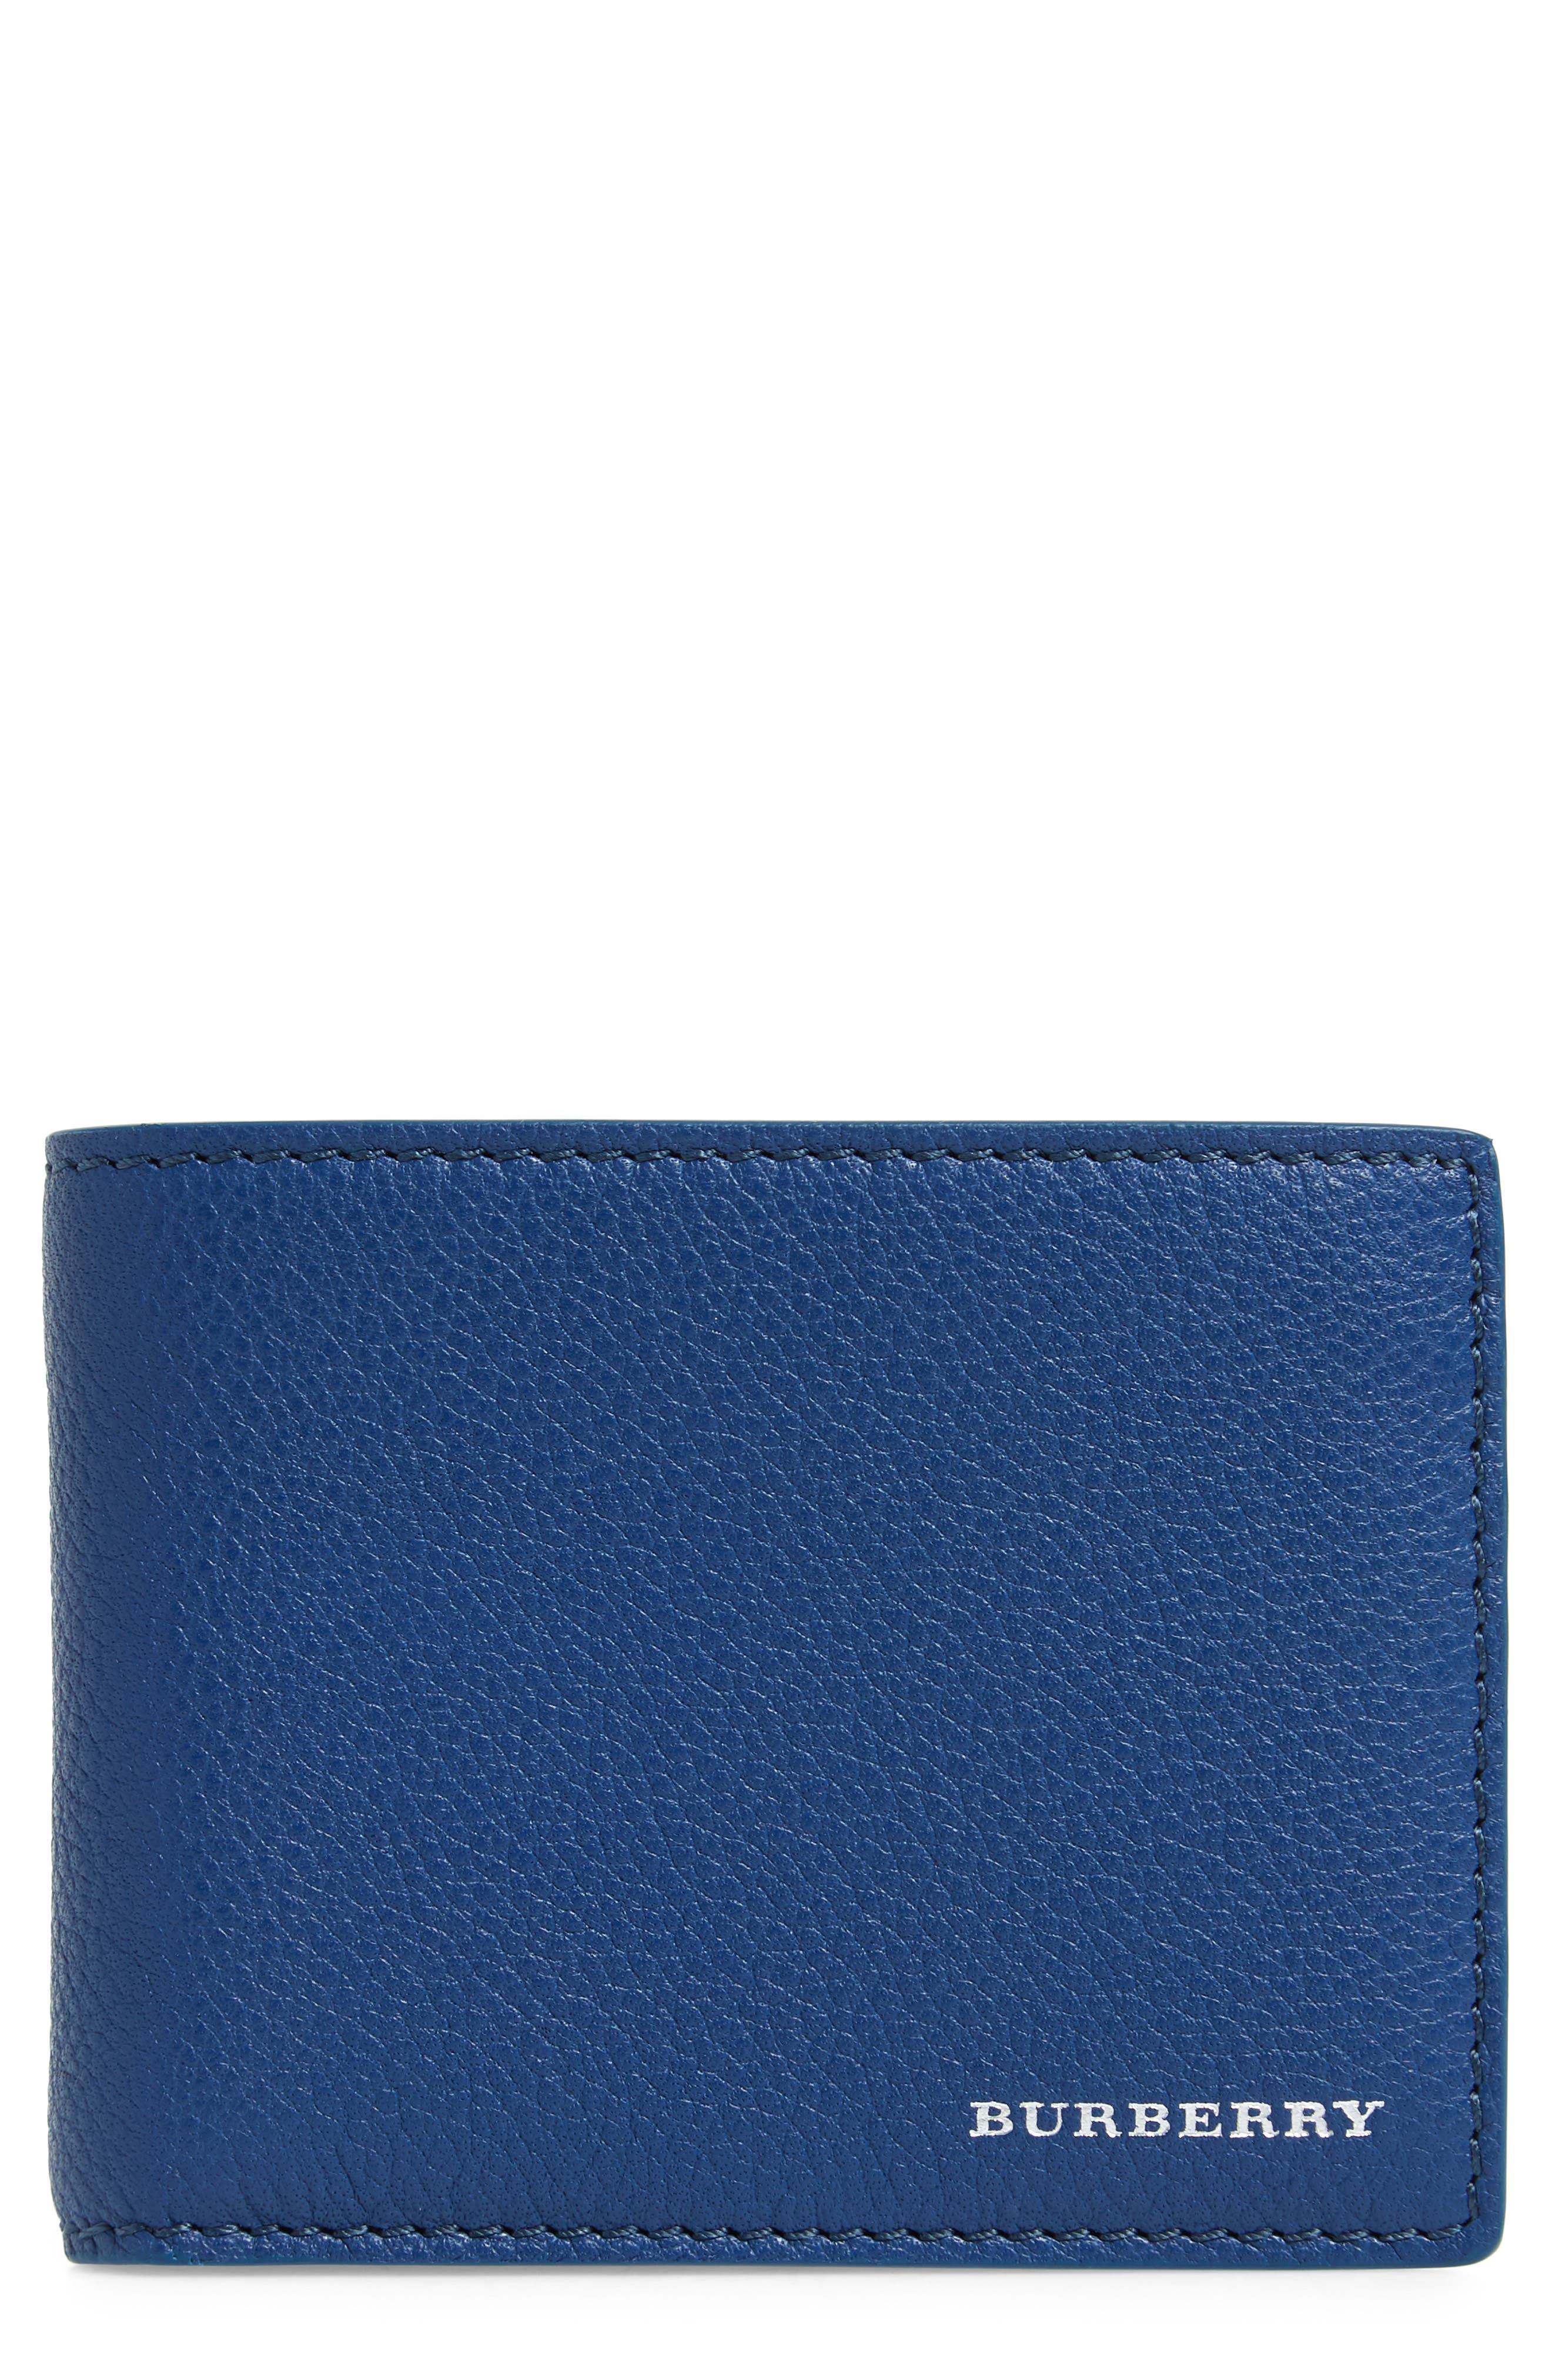 Bifold Leather Wallet,                             Main thumbnail 1, color,                             BRIGHT ULTRAMARINE